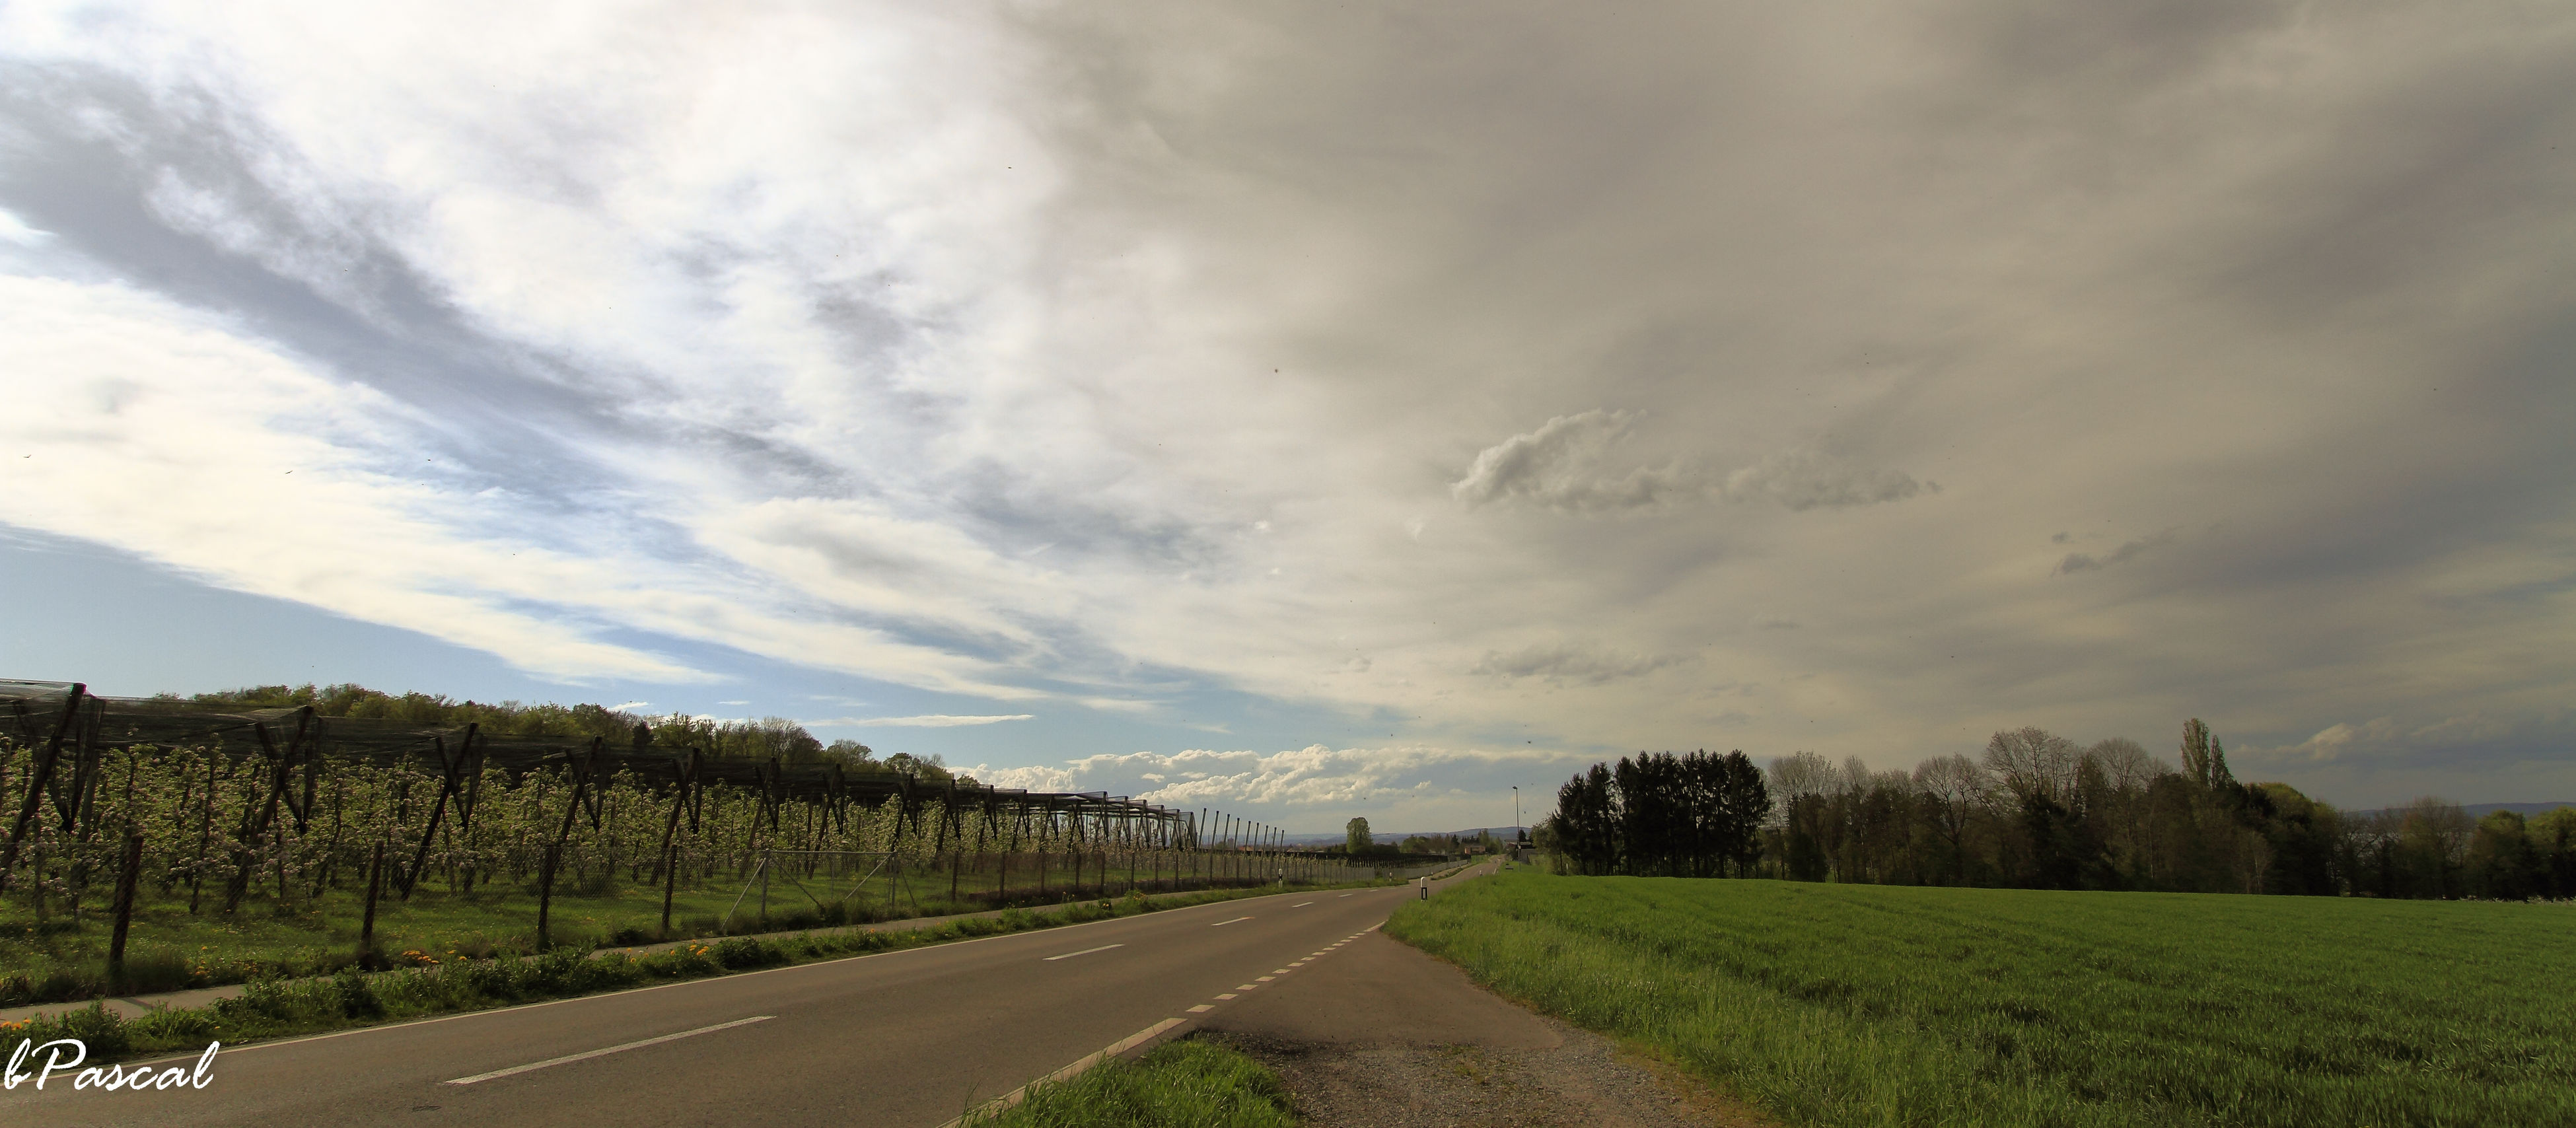 the way forward, road, transportation, sky, diminishing perspective, country road, landscape, vanishing point, tranquility, tranquil scene, cloud - sky, tree, field, nature, empty road, scenics, beauty in nature, grass, cloudy, dirt road